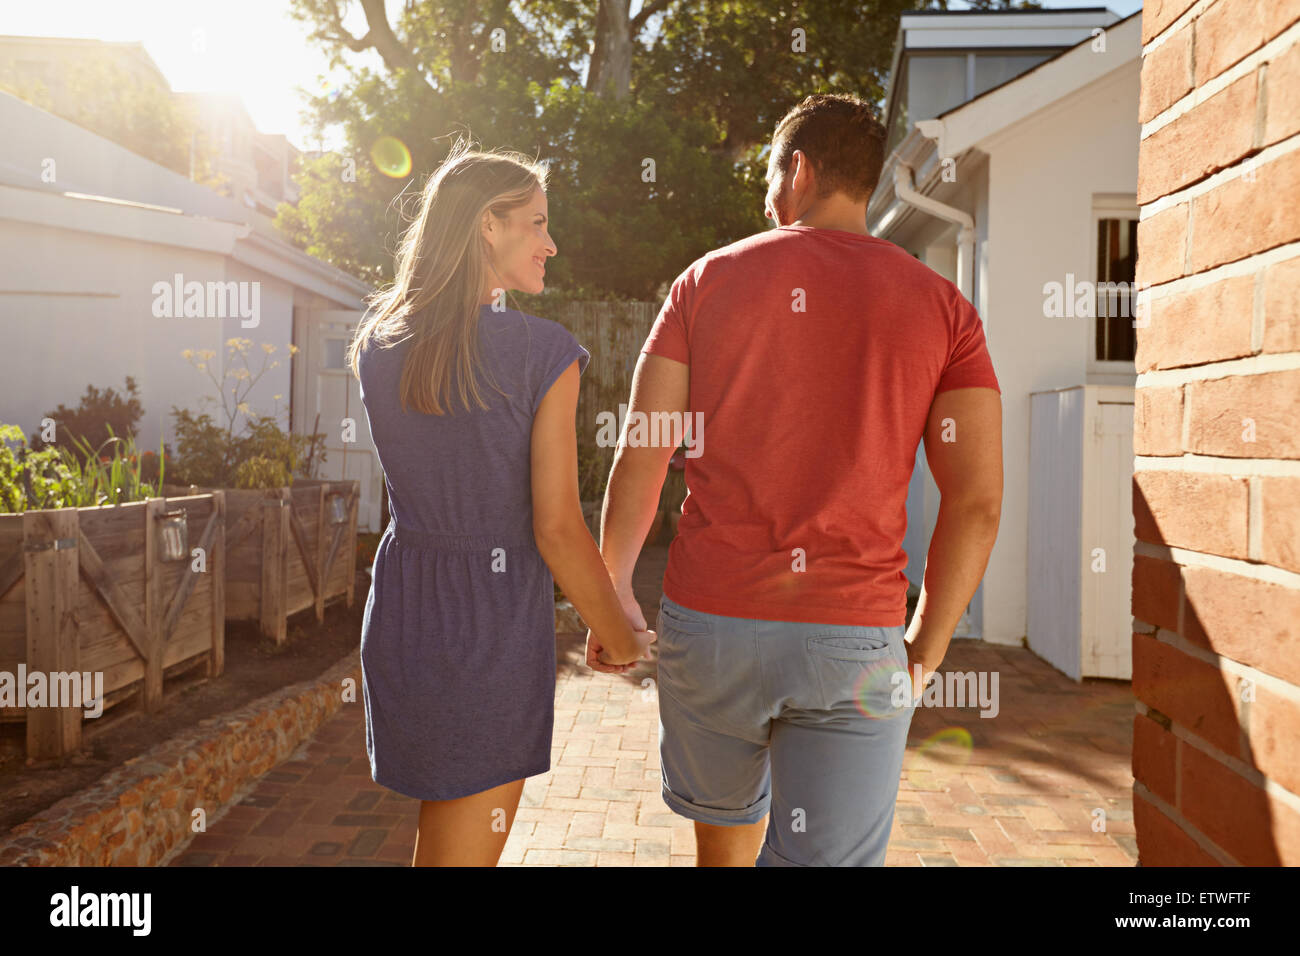 Rear view shot of a young couple taking a walk holding hand in hand outside in their backyard. Loving young couple - Stock Image